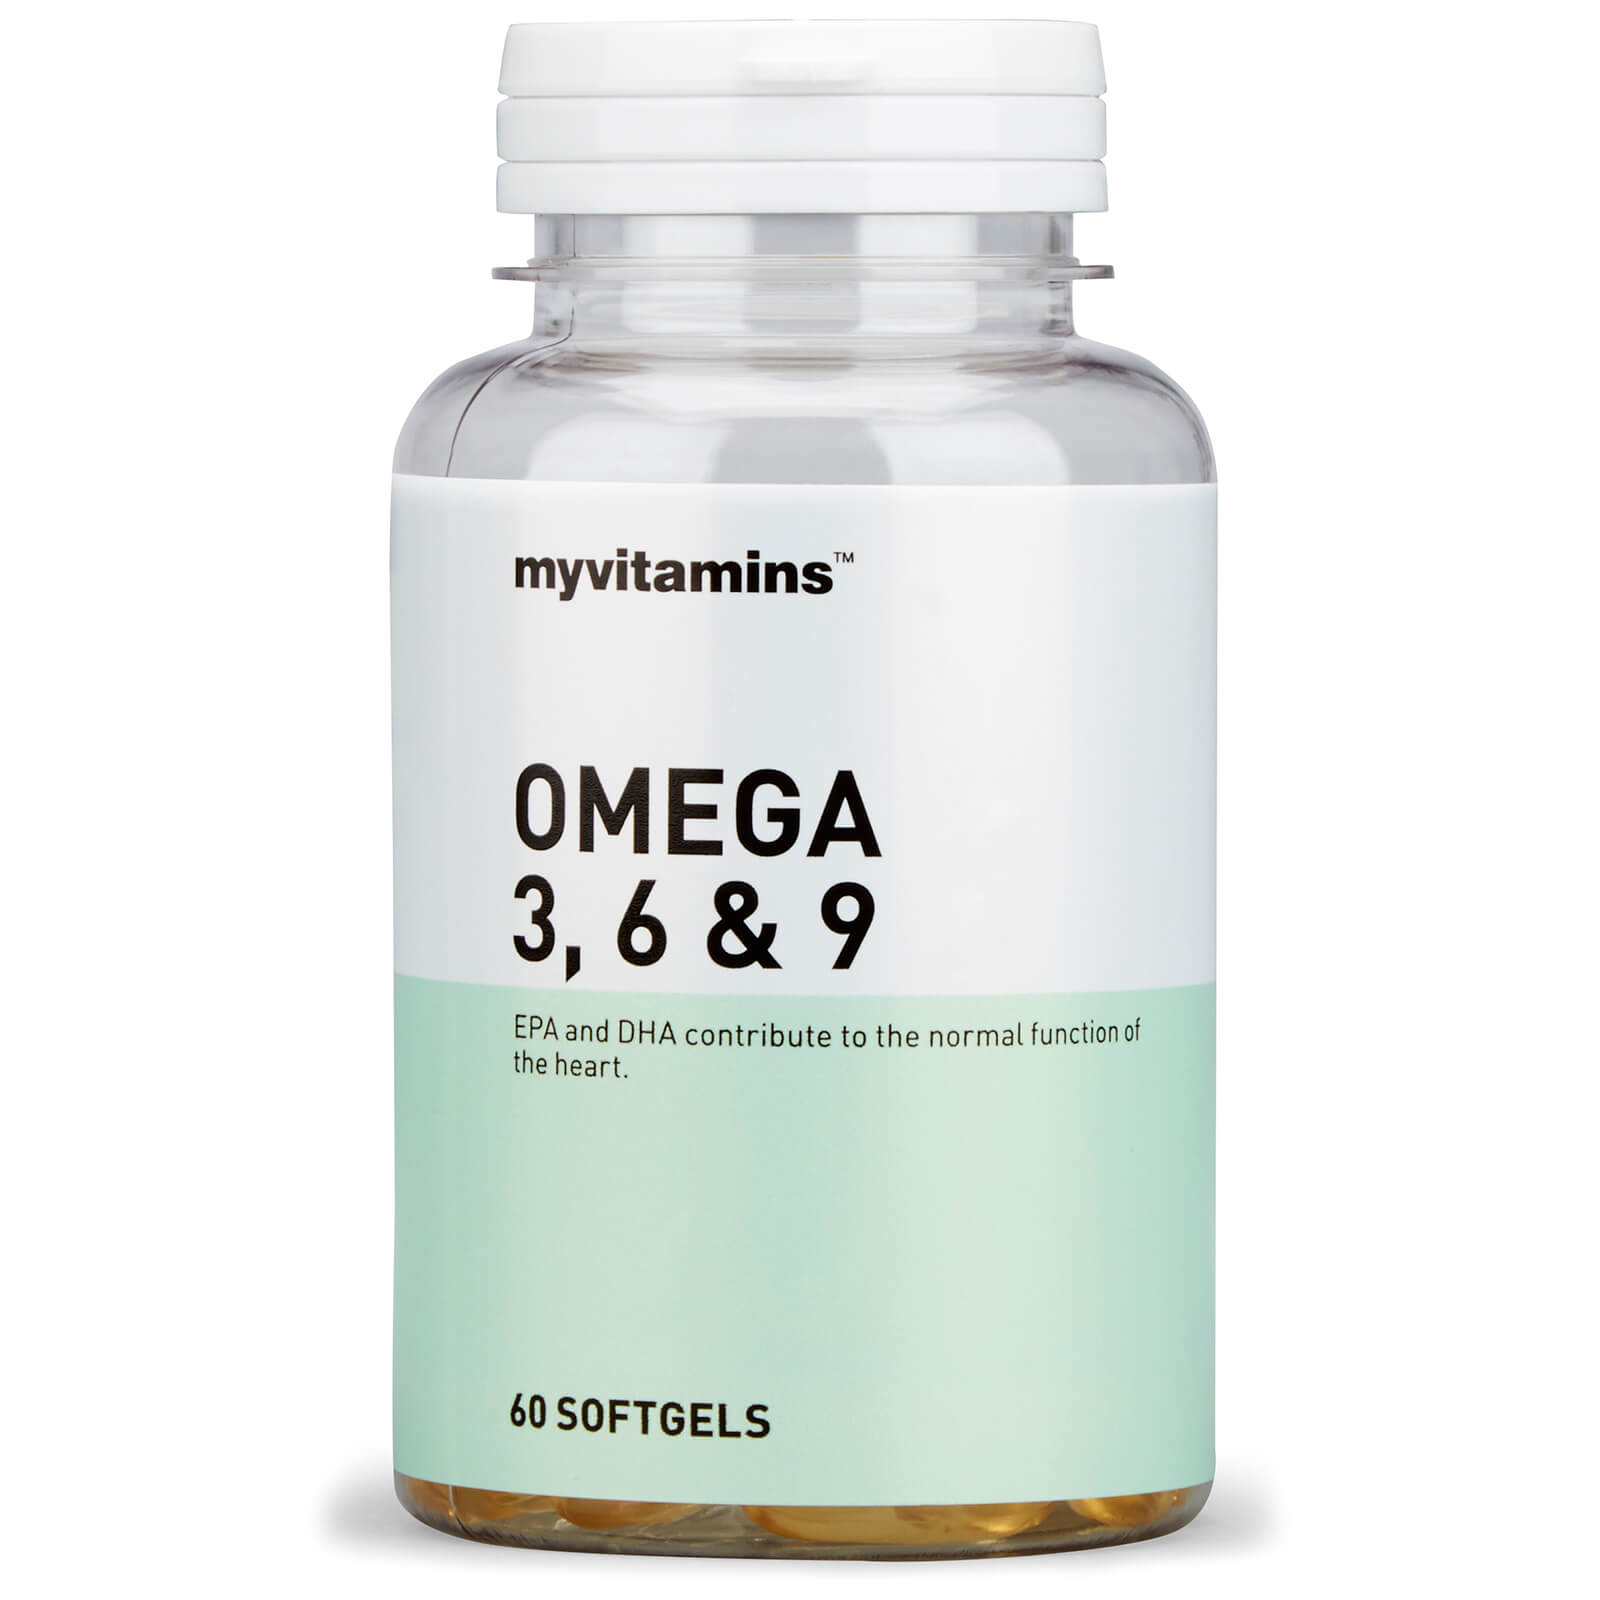 Ebay Suche Bei Deinem Spar Preis Katalog Finden Auf Kal Ultra Omega 369 50 Caps 3 6 9 Provides 1200mg Of The Perfect Balance Naturally Sourced Fatty Acids